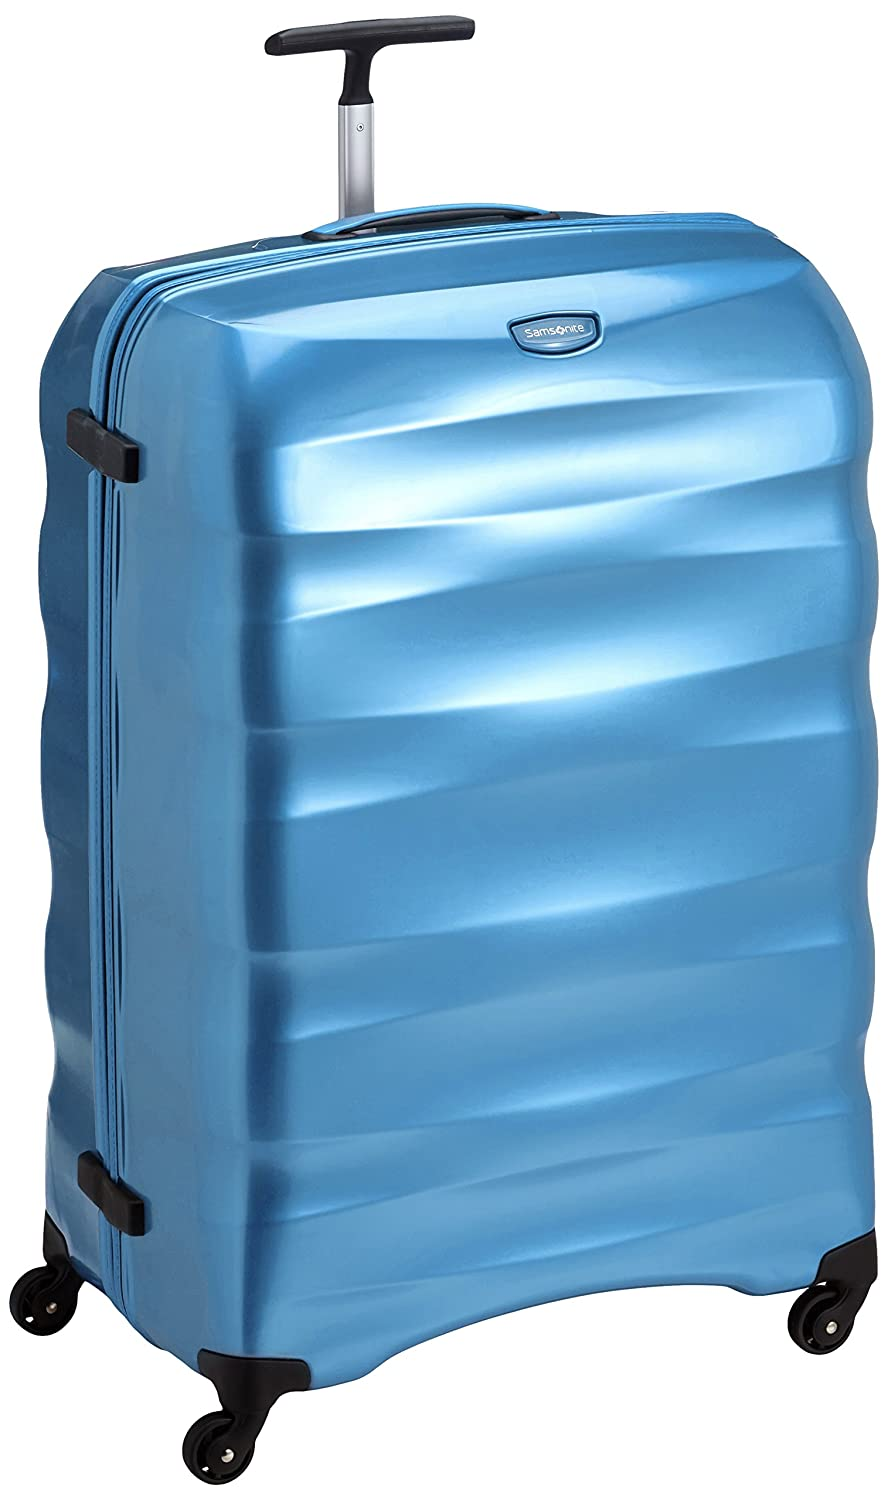 Samsonite Engenero Spinner 81/30 Maletas y trolleys, 81 cm, 130 L, Azul (Azul): Amazon.es: Equipaje